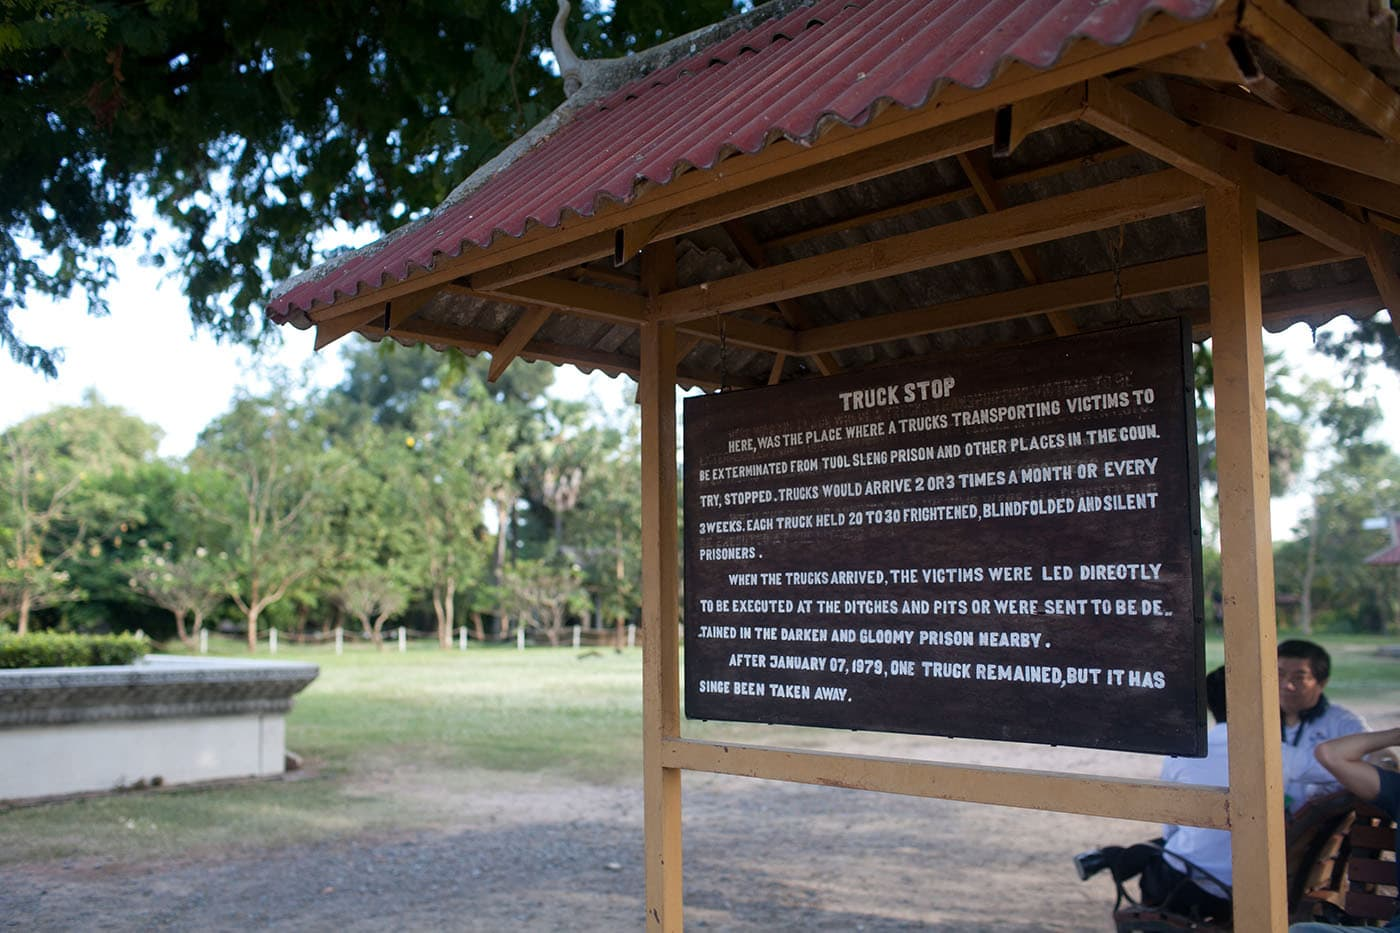 Killing Fields in Phnom Penh, Cambodia